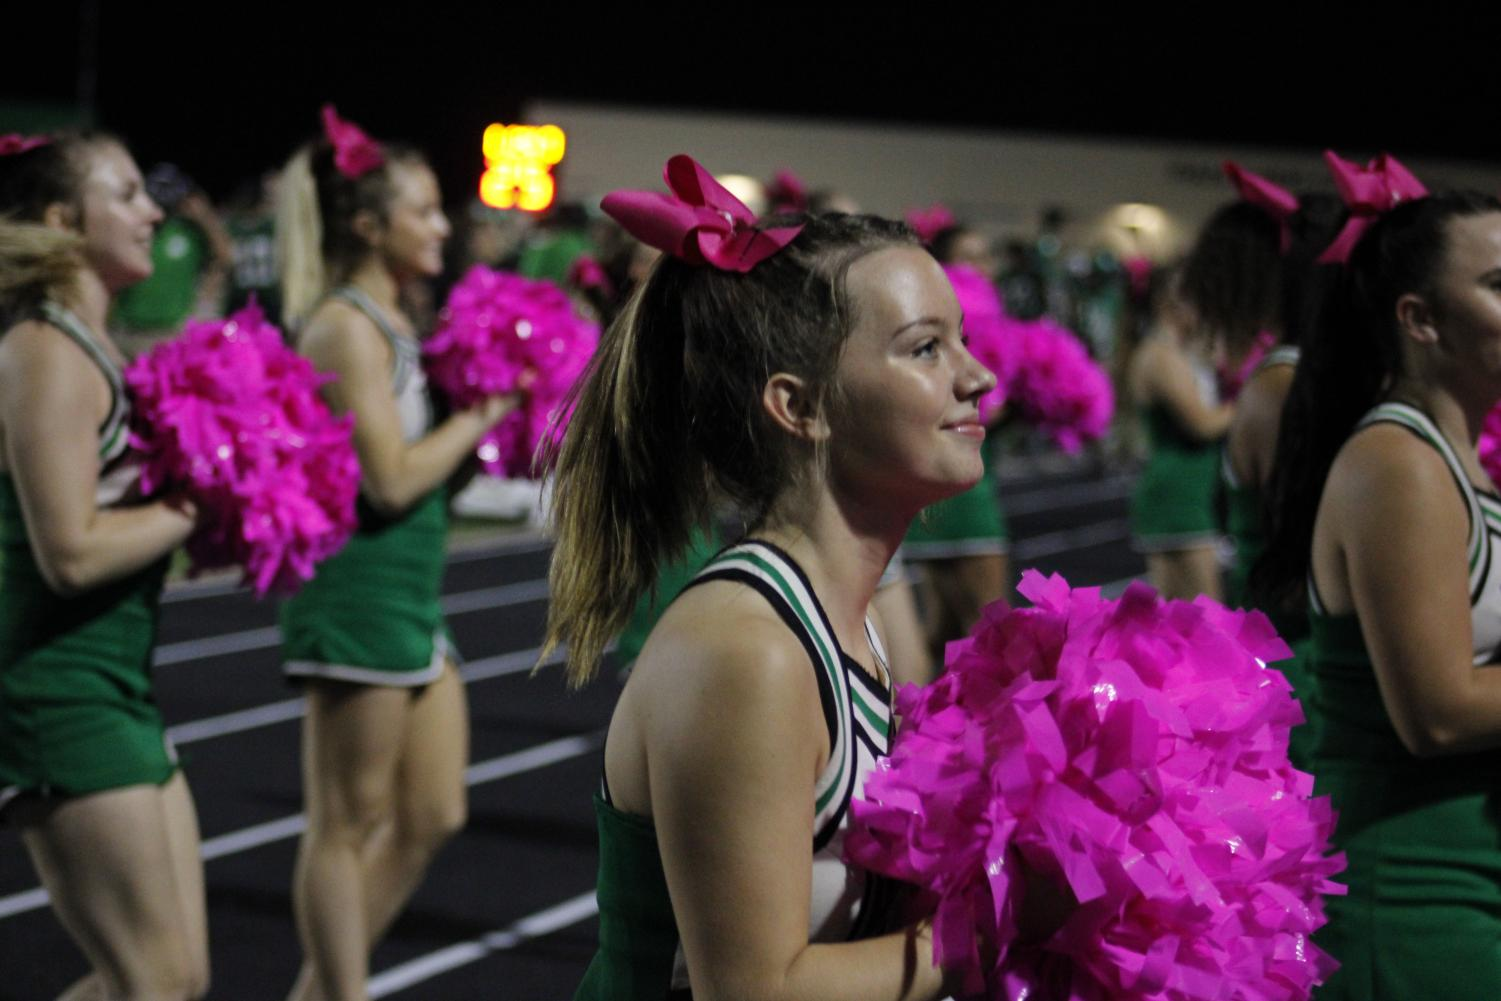 Cheer+and+Dance+Team+at+Campus+Football+Game+%28Photos+by+Agness+Mbezi%29